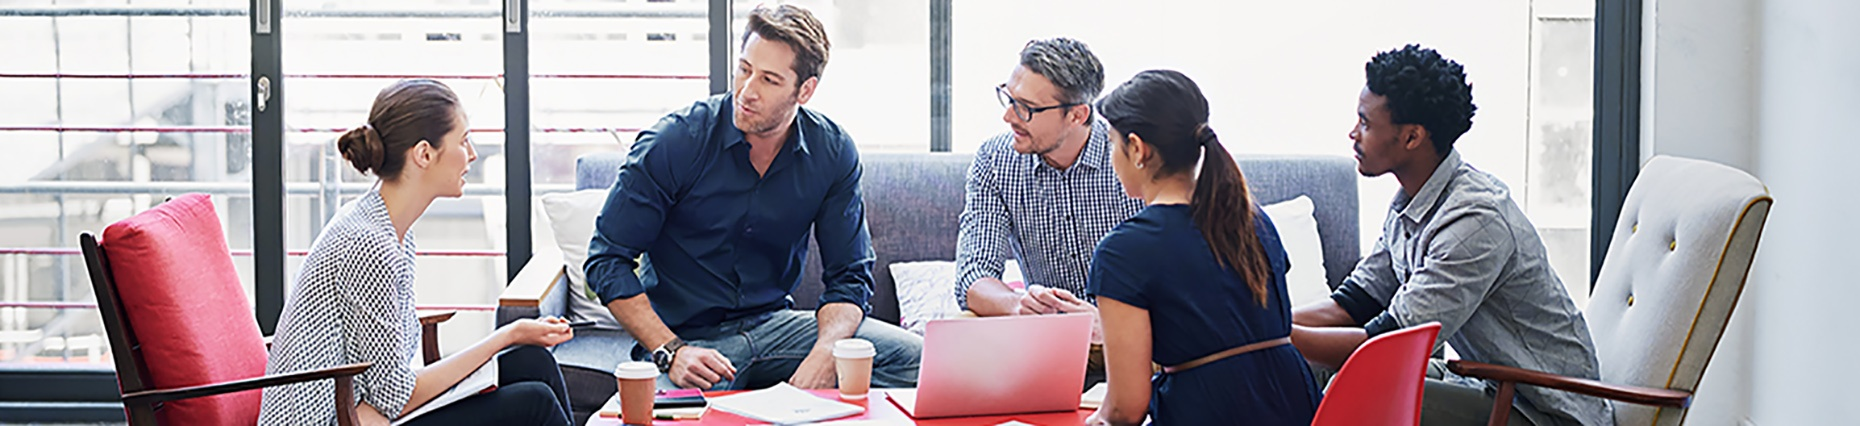 5 Ways to Get the Most Out of B2B Sales Training